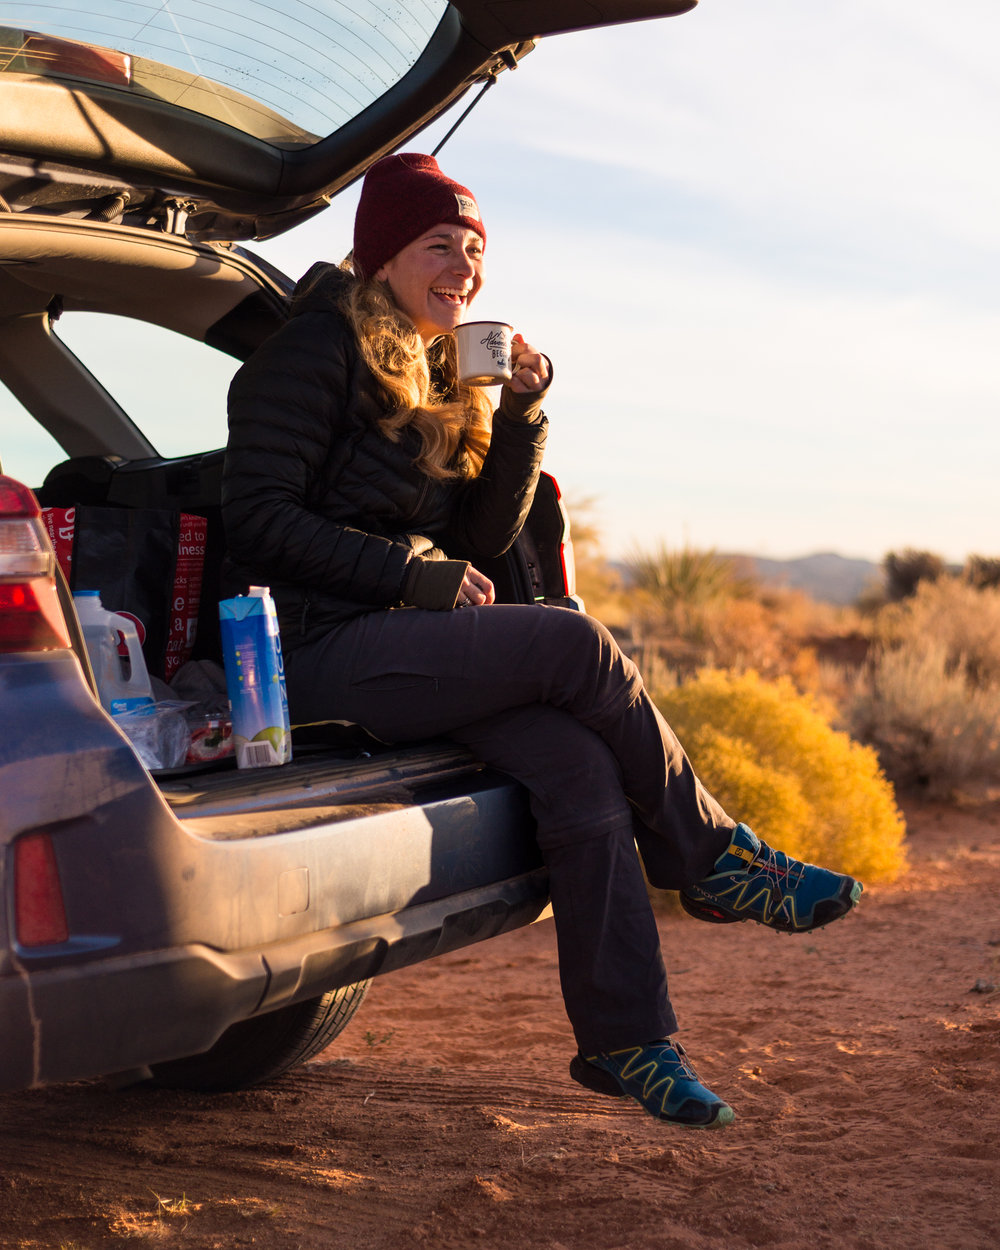 Miles Weaver_Escalante_coffee_lifestyle_sunrise.jpg